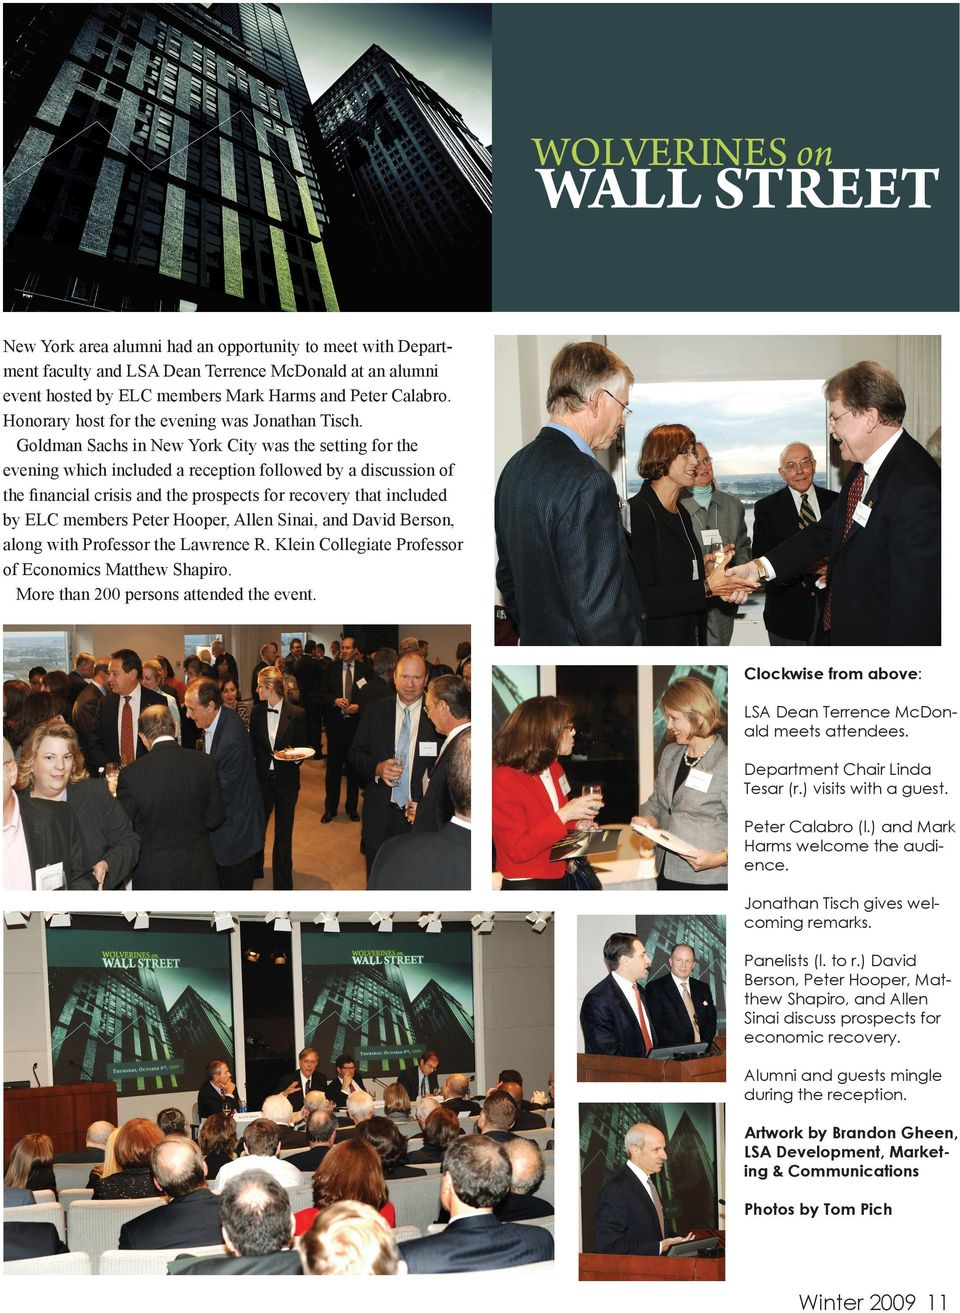 Goldman Sachs in New York City was the setting for the evening which included a reception followed by a discussion of the financial crisis and the prospects for recovery that included by ELC members